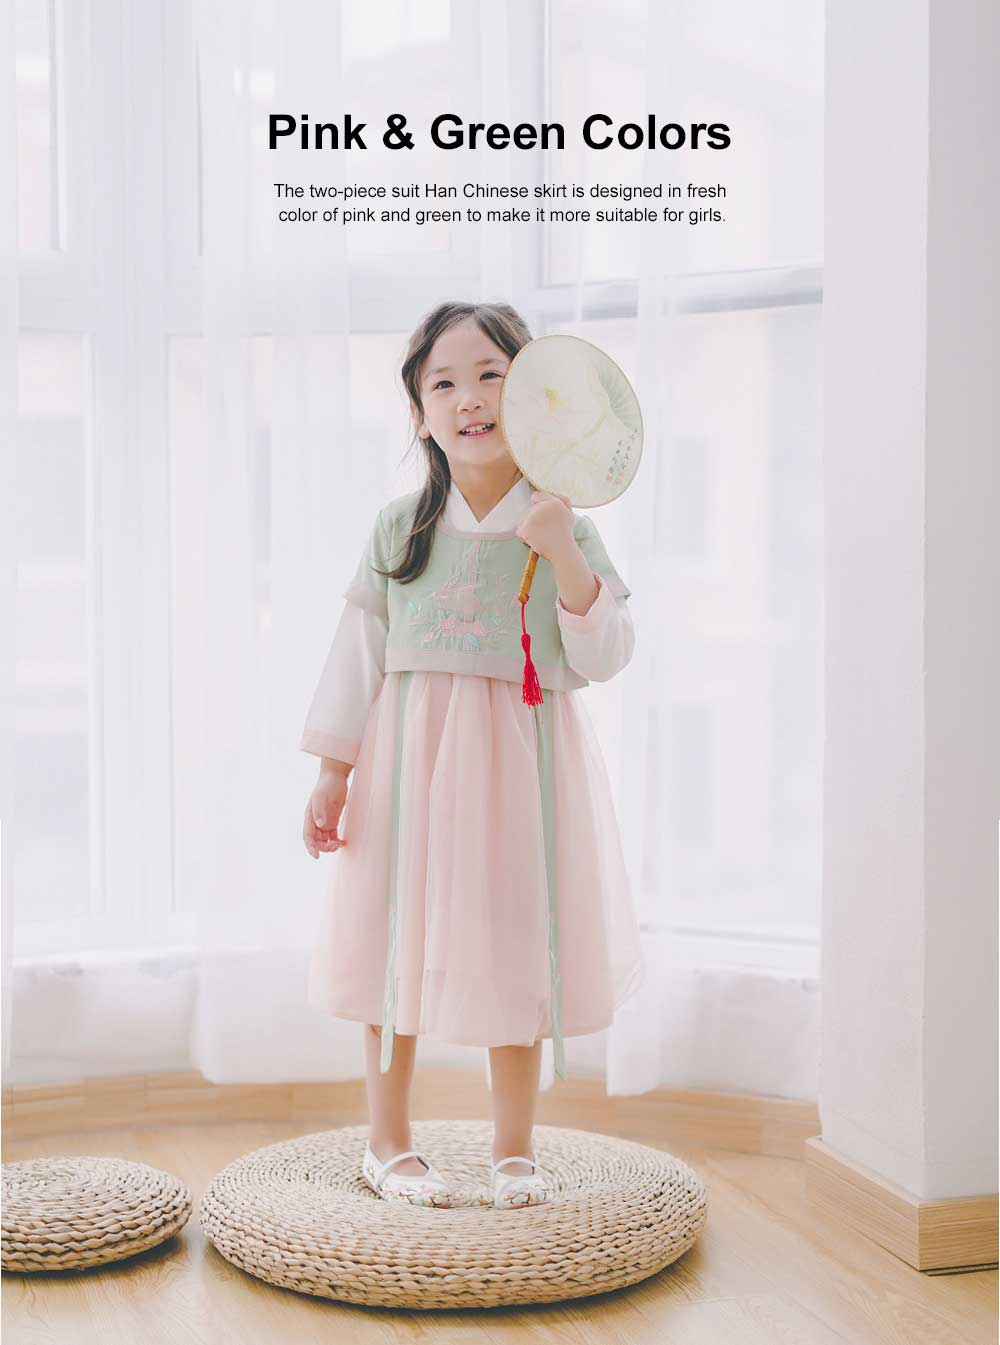 Chinese Style Embroidered Long Skirts Special Two-piece Suit Han Chinese Clothing for Girls 1